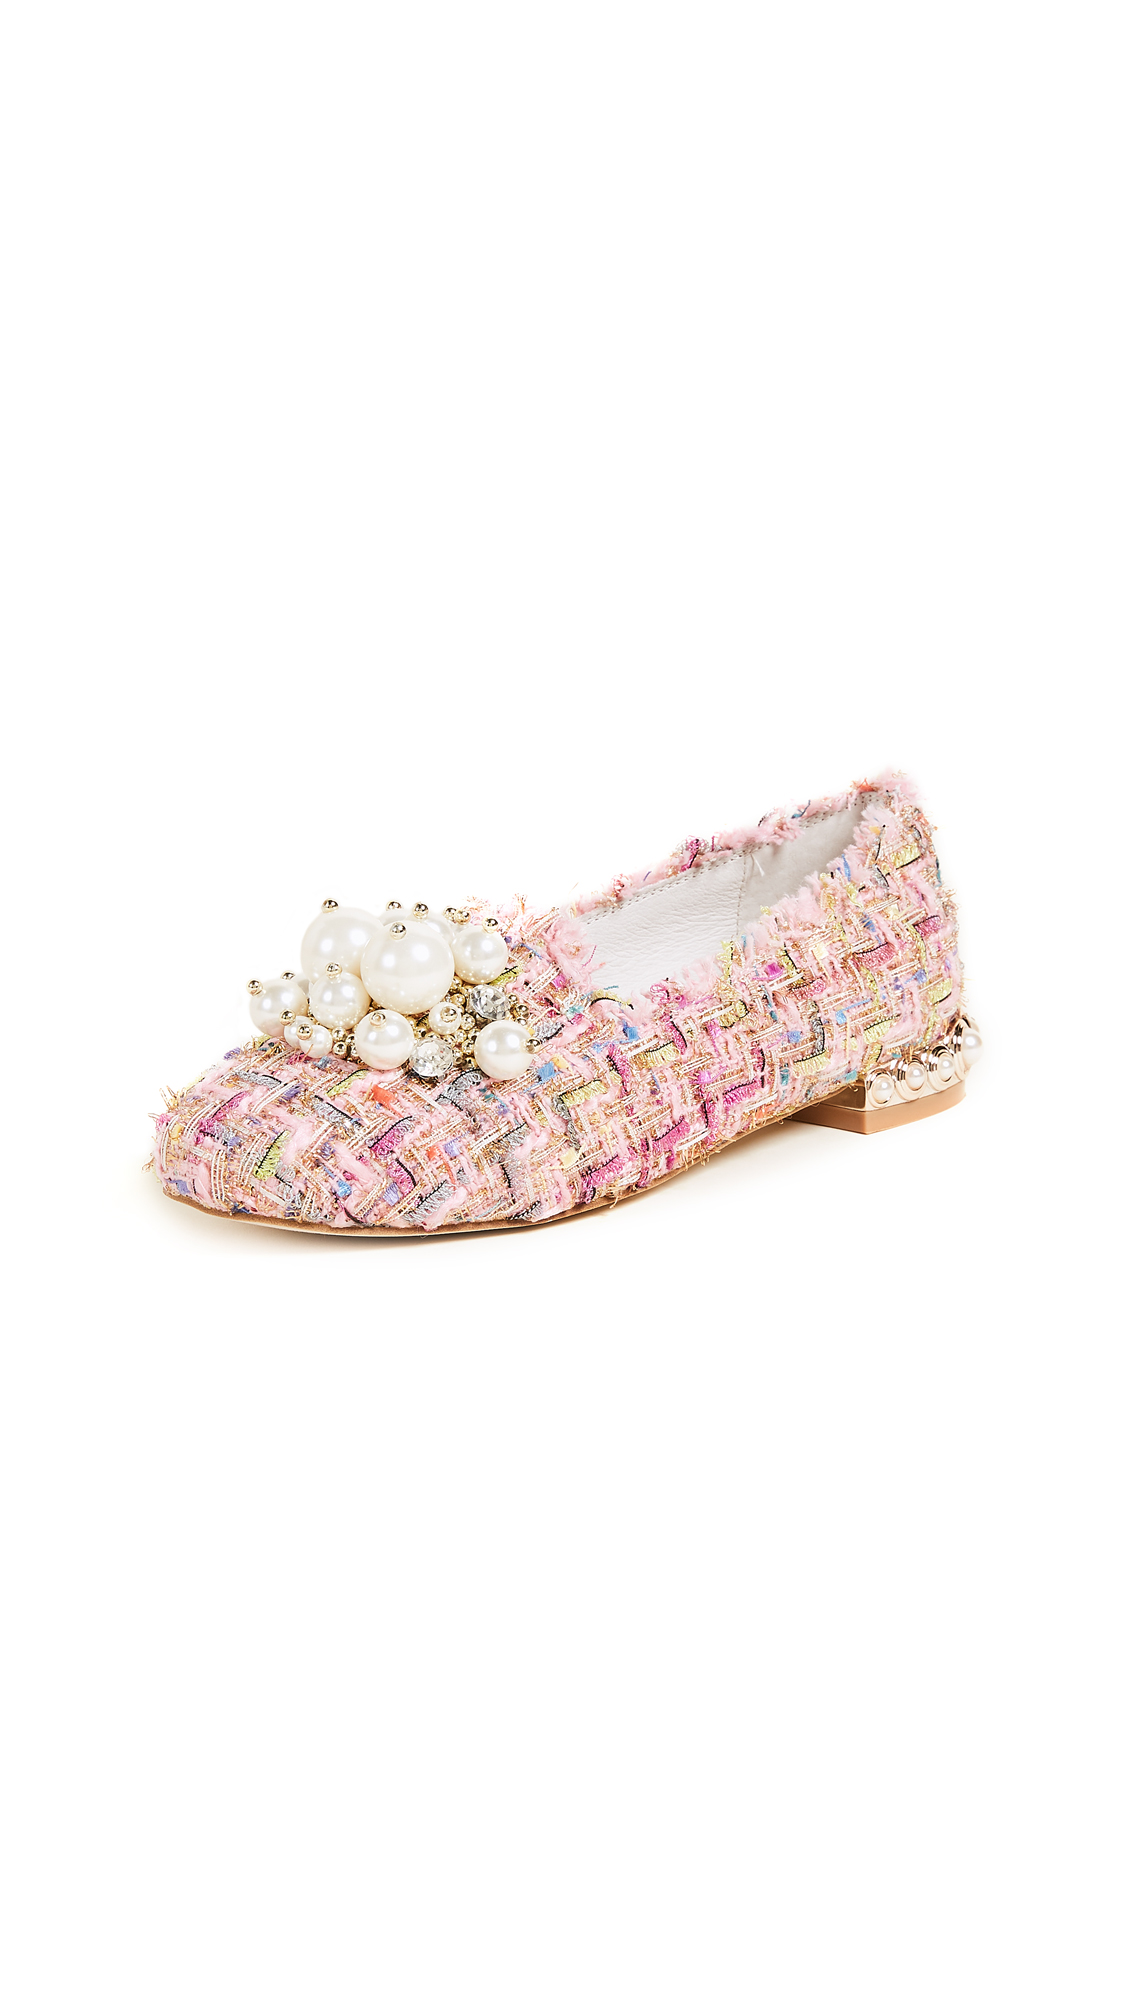 Jeffrey Campbell Honor Tweed Smoking Slippers - Pink Multi